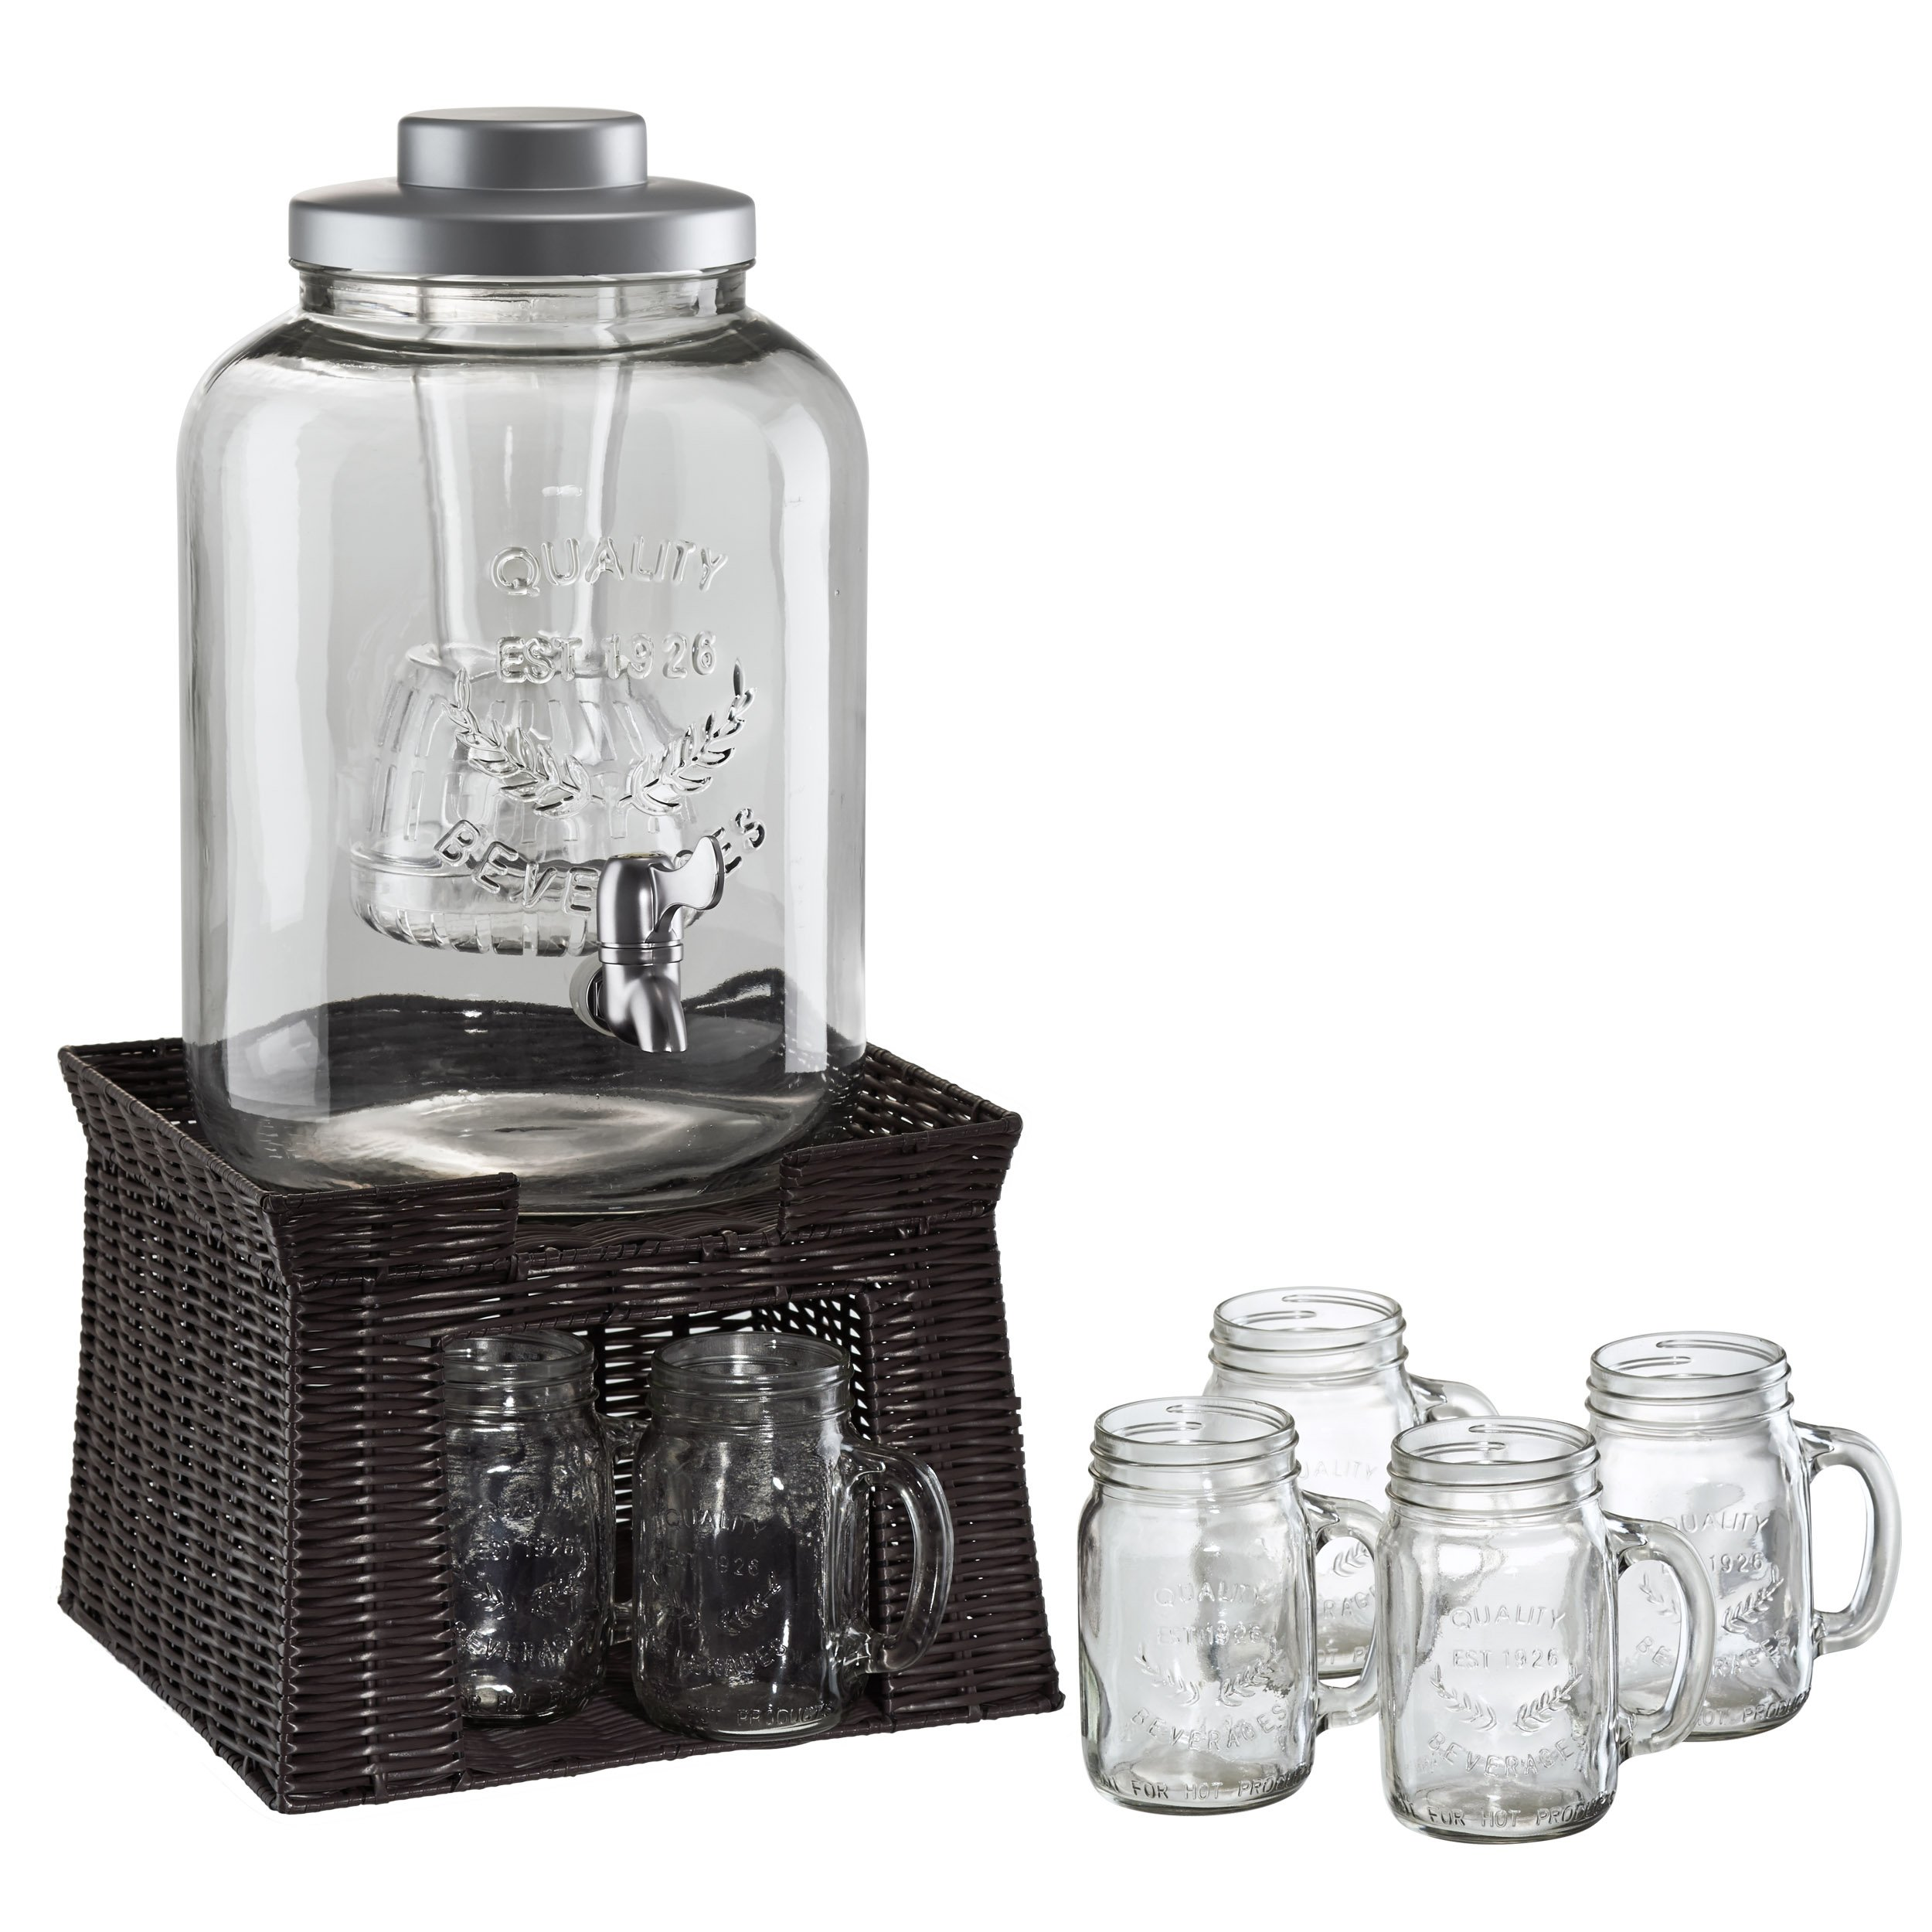 Artland Masonware Beverage Jar with Chiller and Infuser, 6 Mason Jars, Faux Wicker Stand by ARTLAND